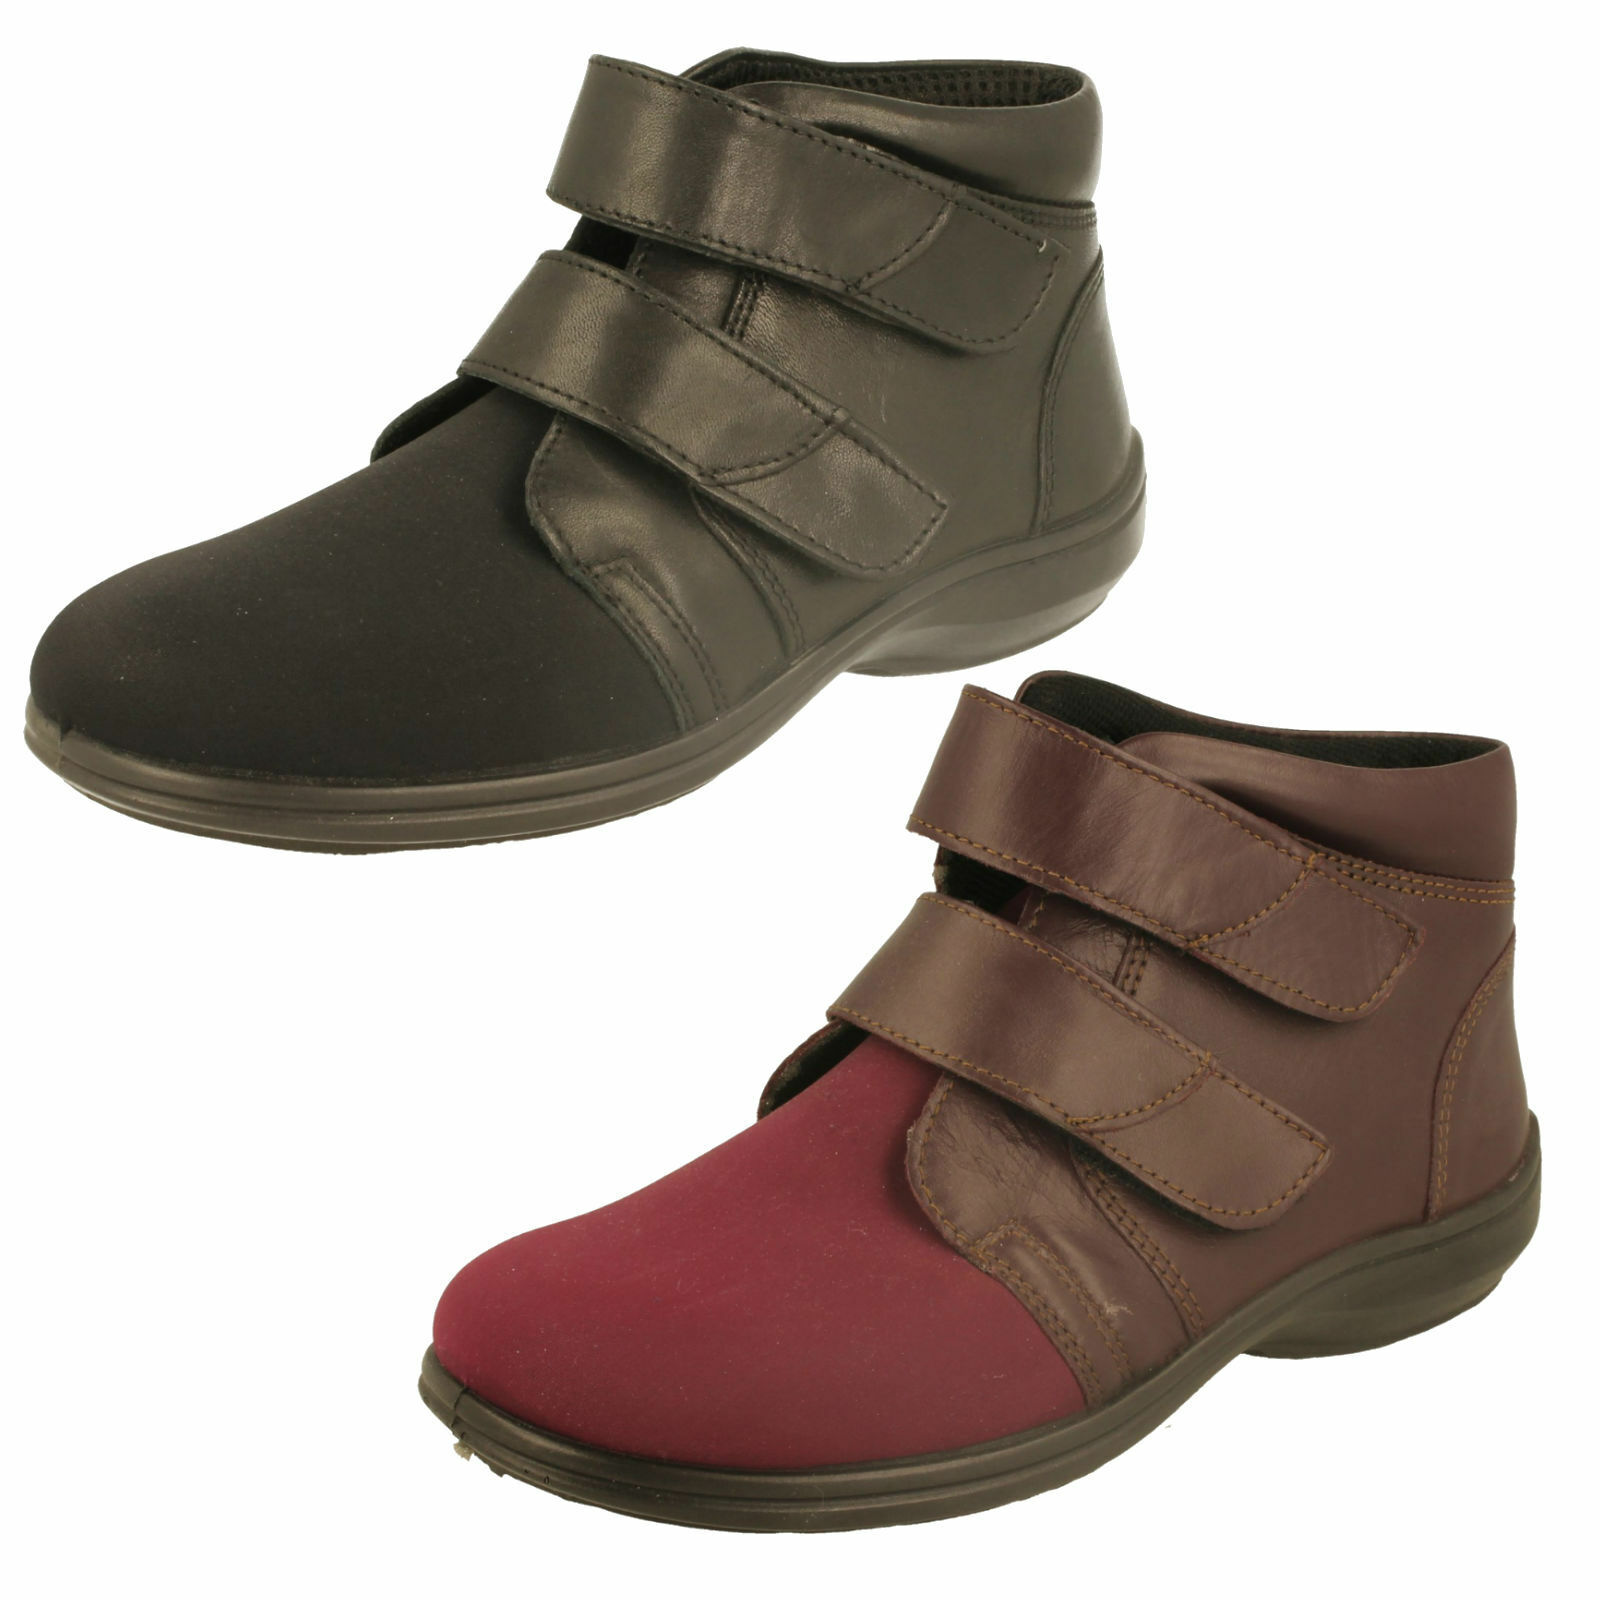 Ladies Easy B Extra Wide Boots - Amy